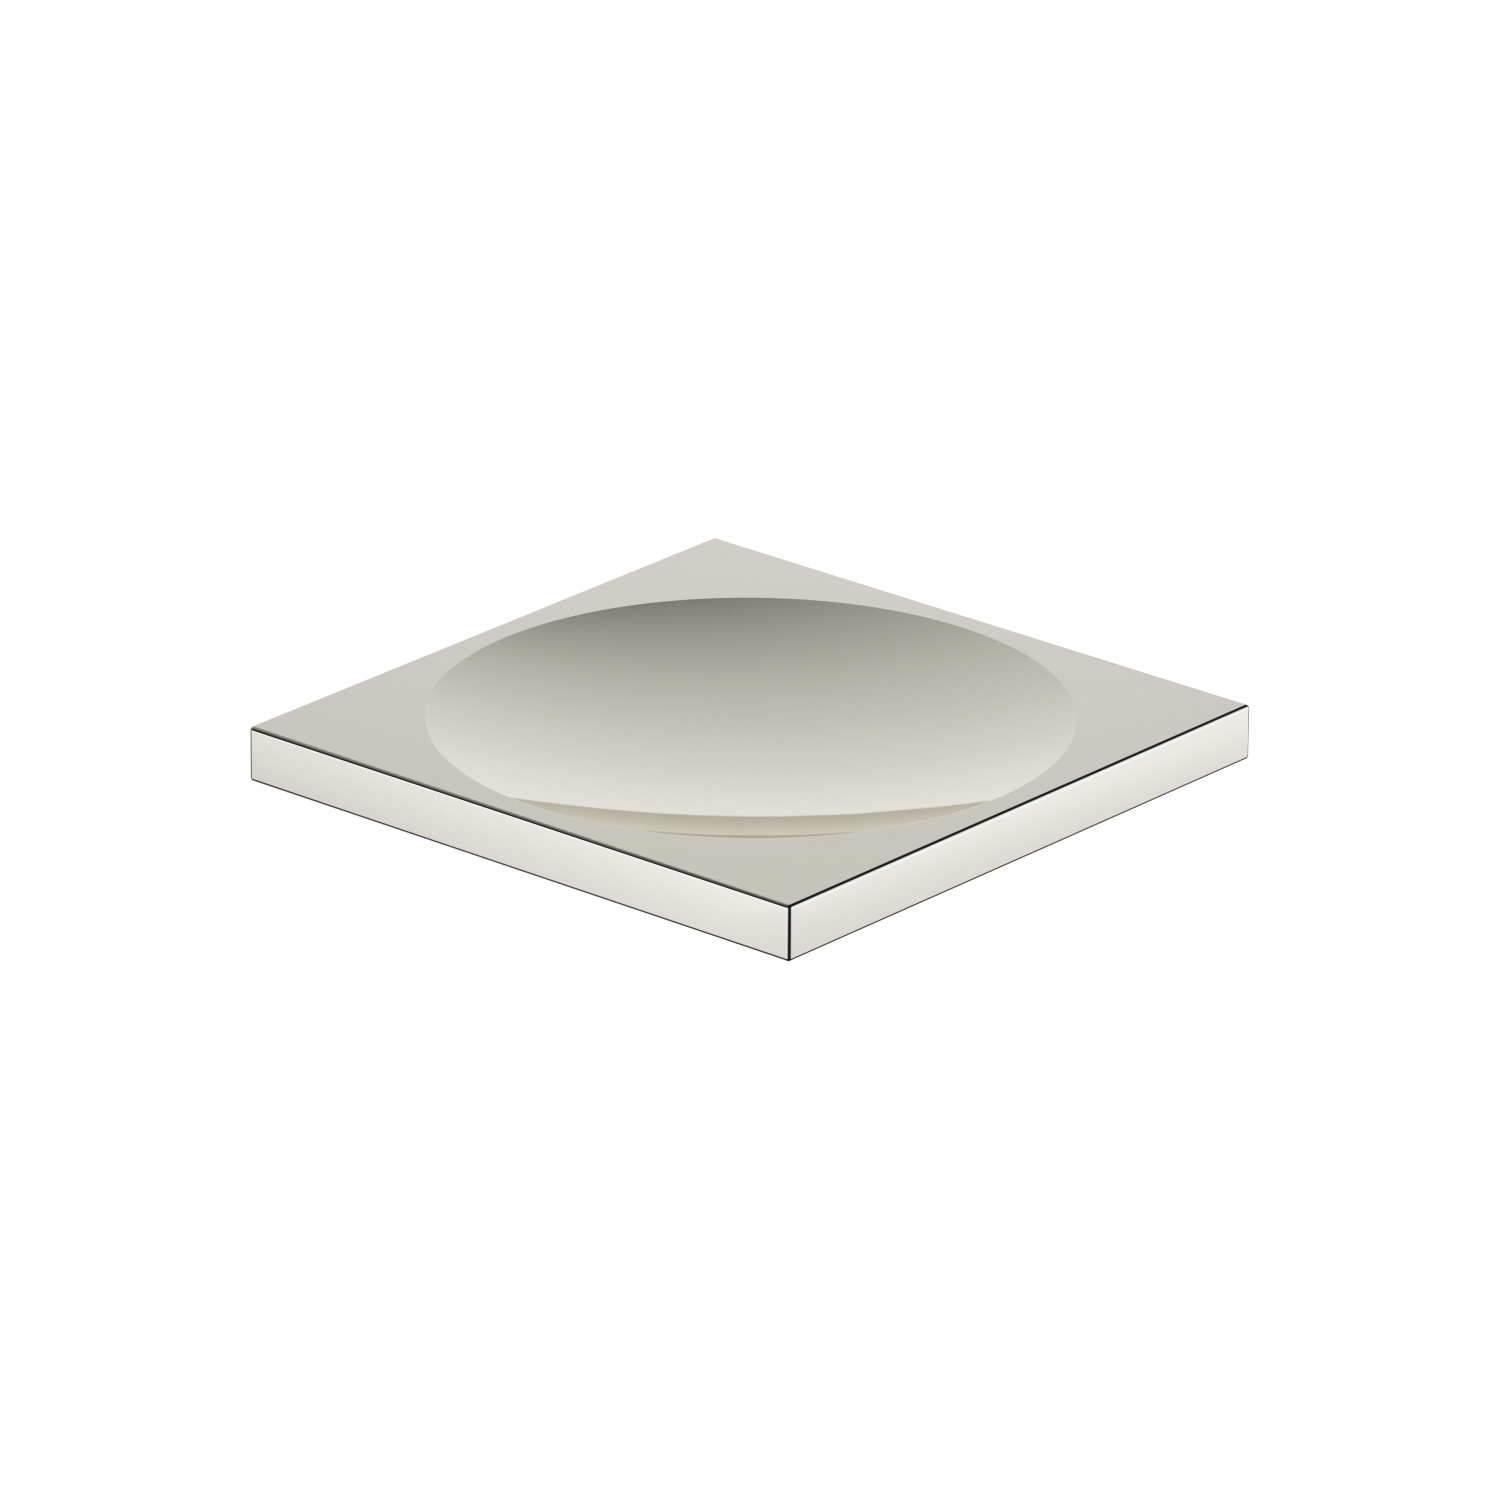 Soap dish freestanding - platinum